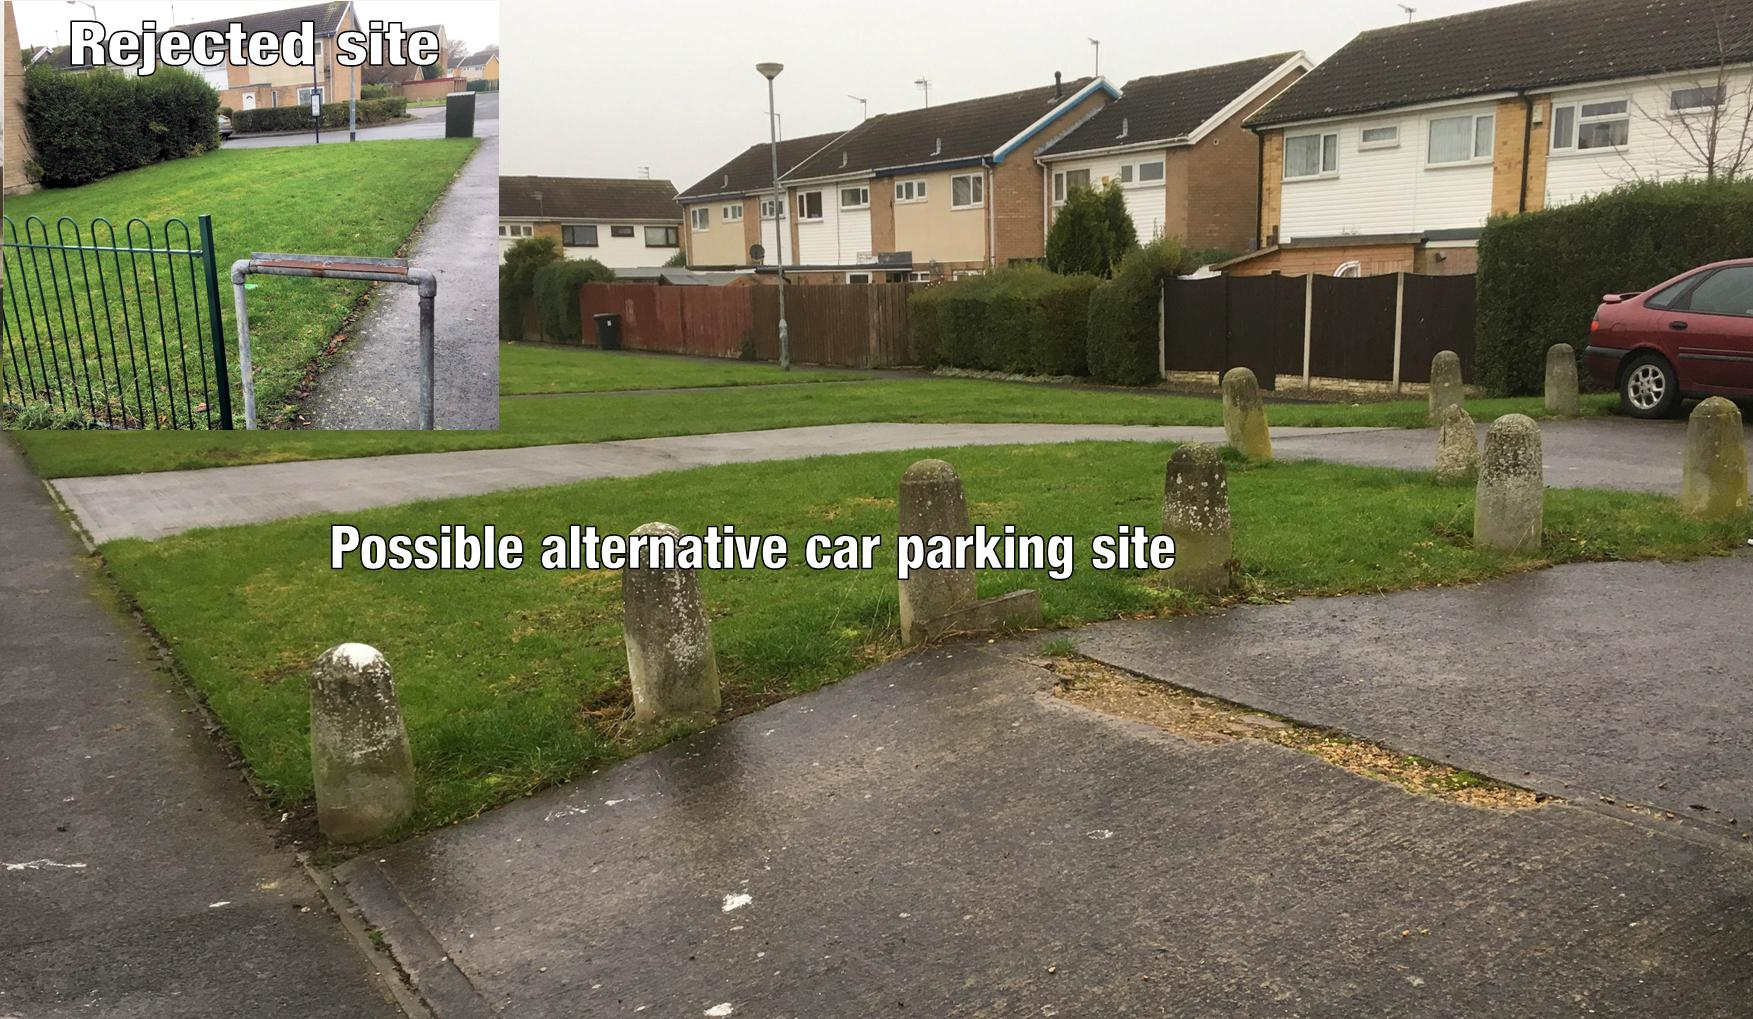 The Council have told local residents that the planned site for additional car parking spaces on Spurr Court/Bellhouse Way is unsuitable. A junction box restricts access to the site. Instead the Council are looking to provide more spaces in the Oldman Court area